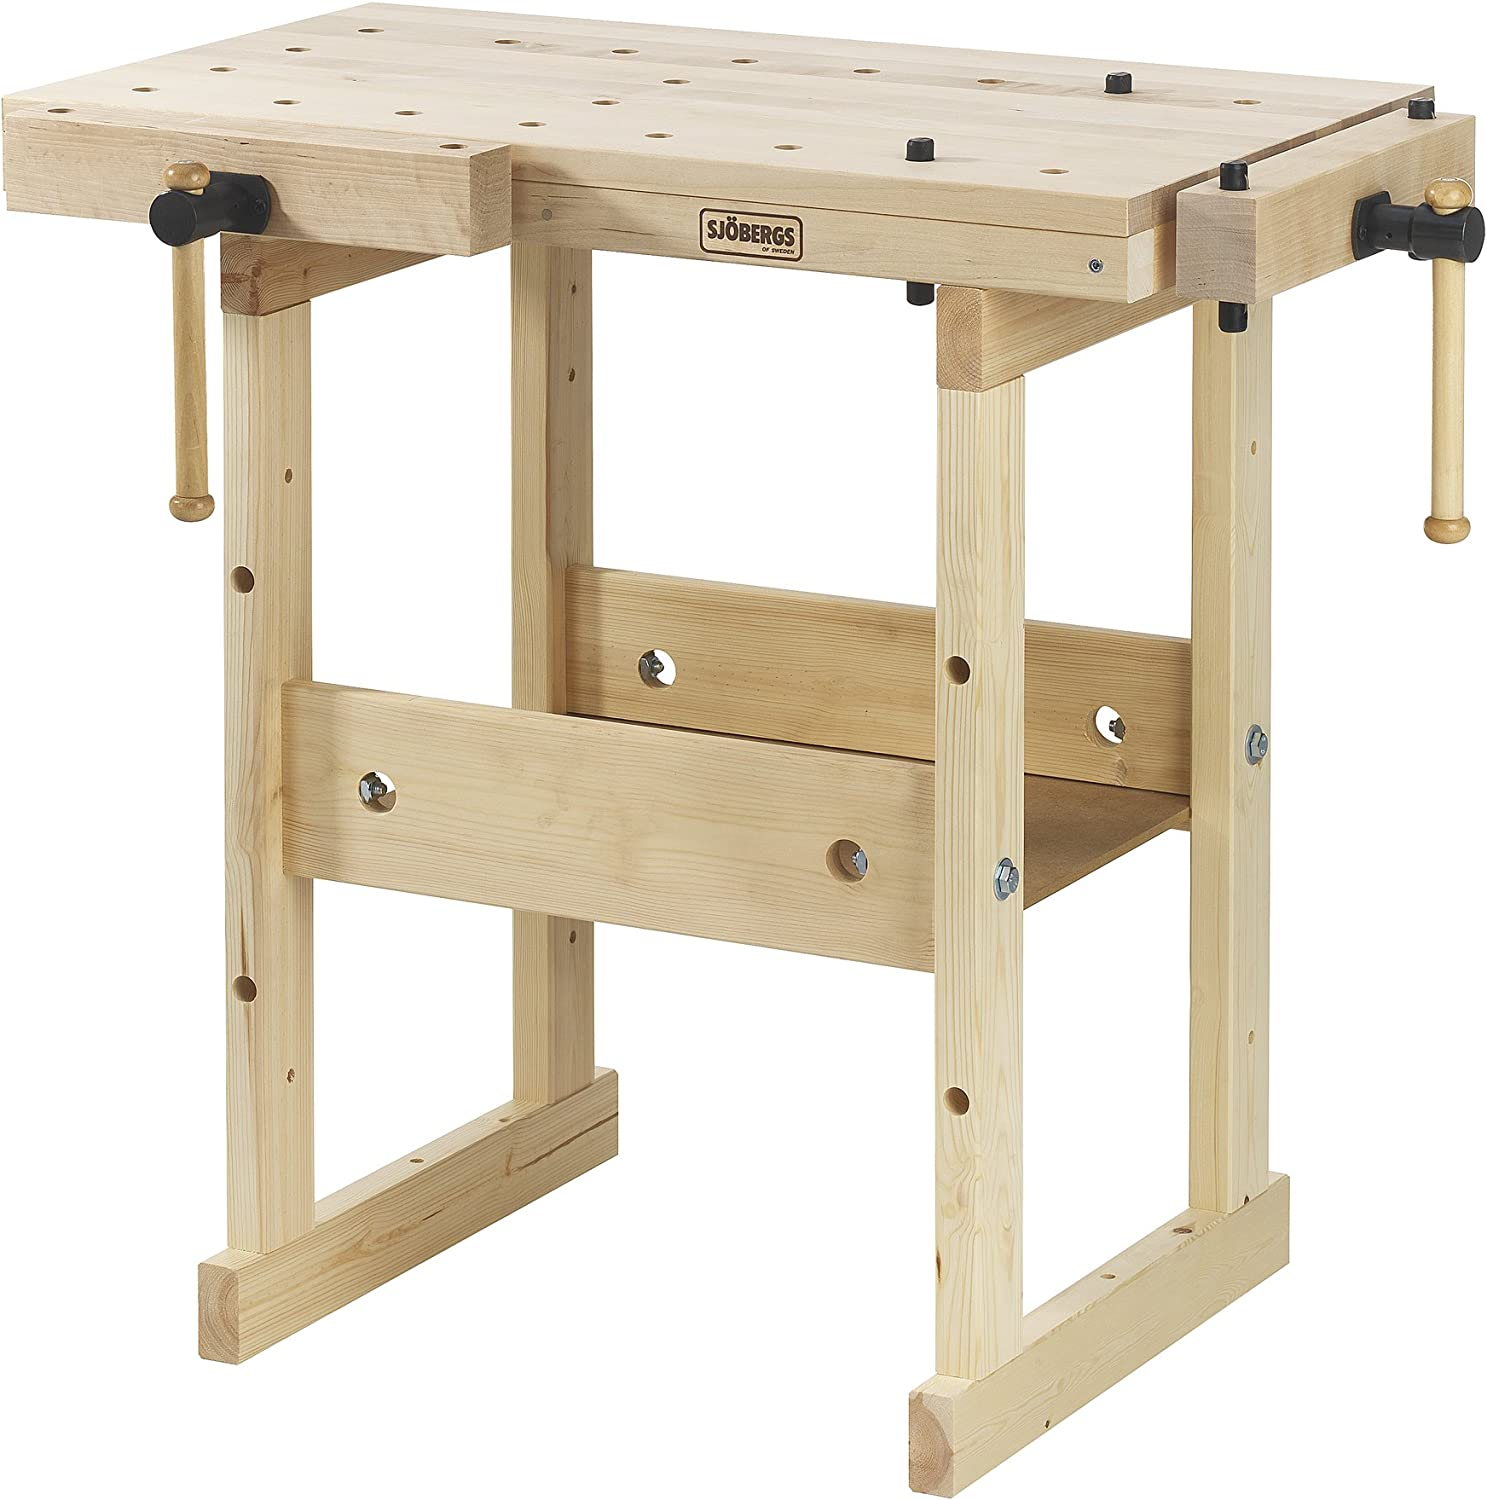 2. Sjobergs Hobby Plus 850 Birch Workbench SJO-33283